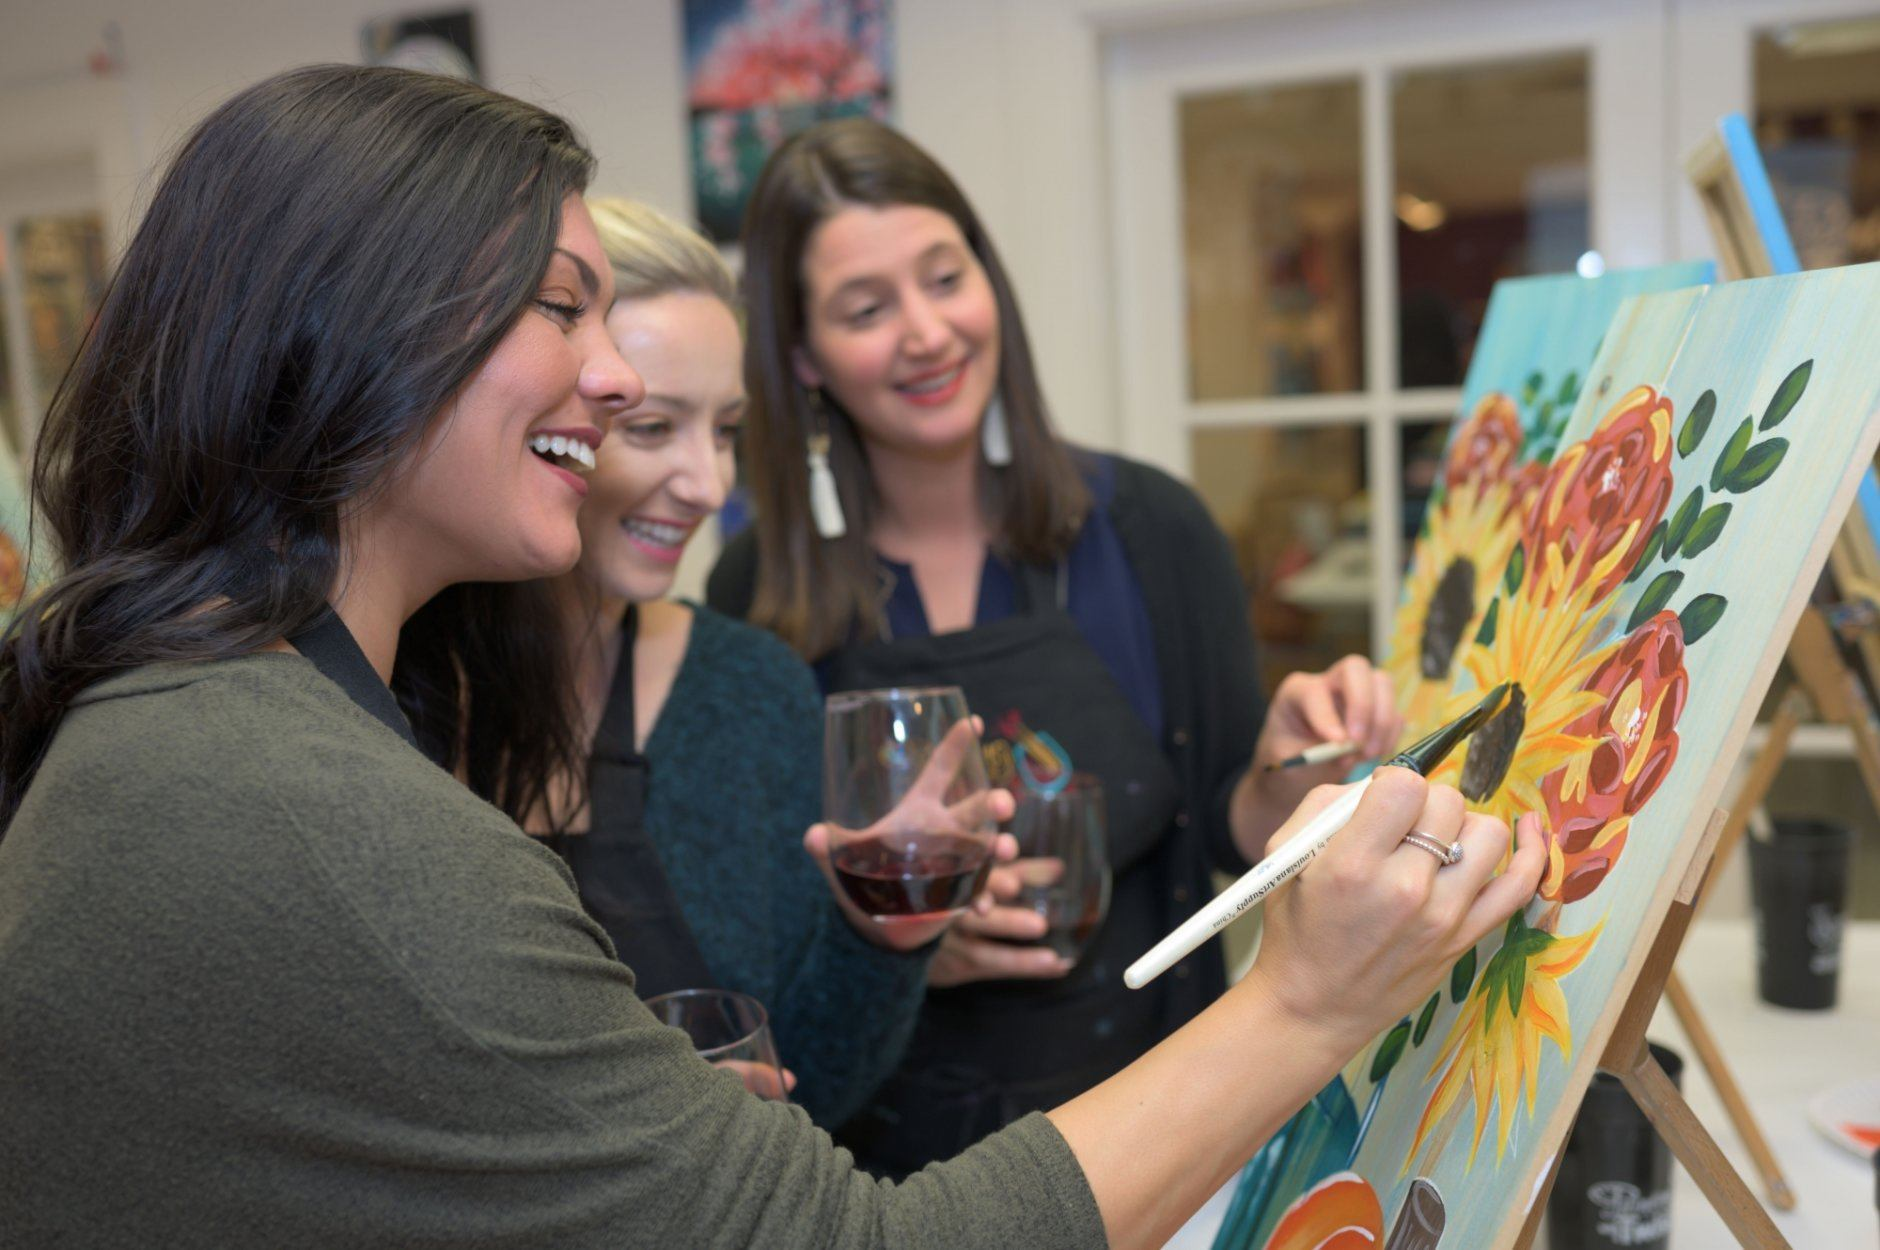 This 2019 photo provided by Painting with a Twist shows a group during a Painting with a Twist event in Mandeville, La. In recent years, the interactive painting industry has become a global sensation. Around the world, adults can spend their nights out learning to paint in a relaxed, BYOB setting. Thousands of franchises exist to help us all unleash our inner creative. (Painting with a Twist via AP)